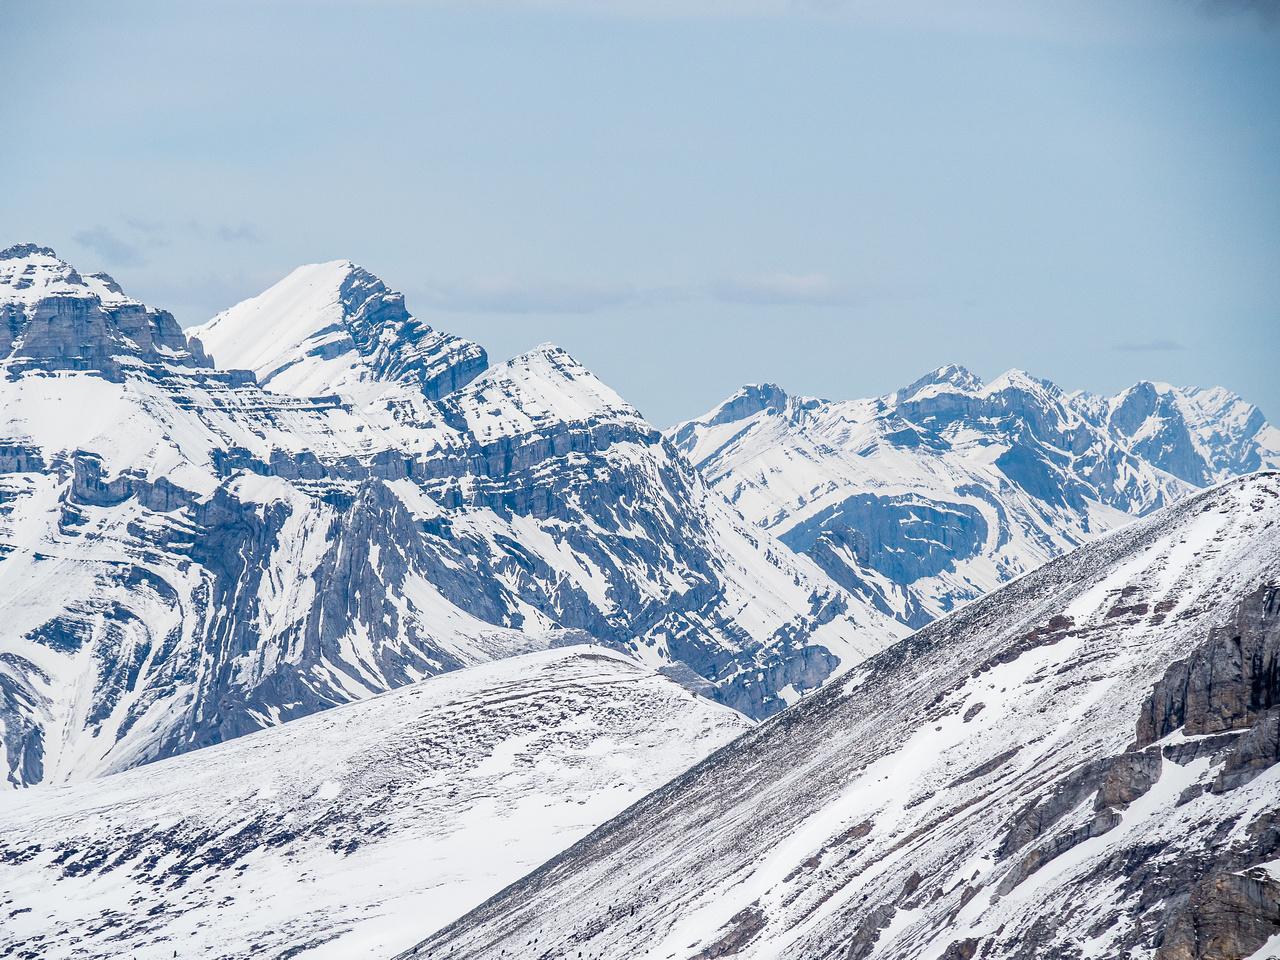 Mount Girouard at left with Mount Astley at distant right of center.